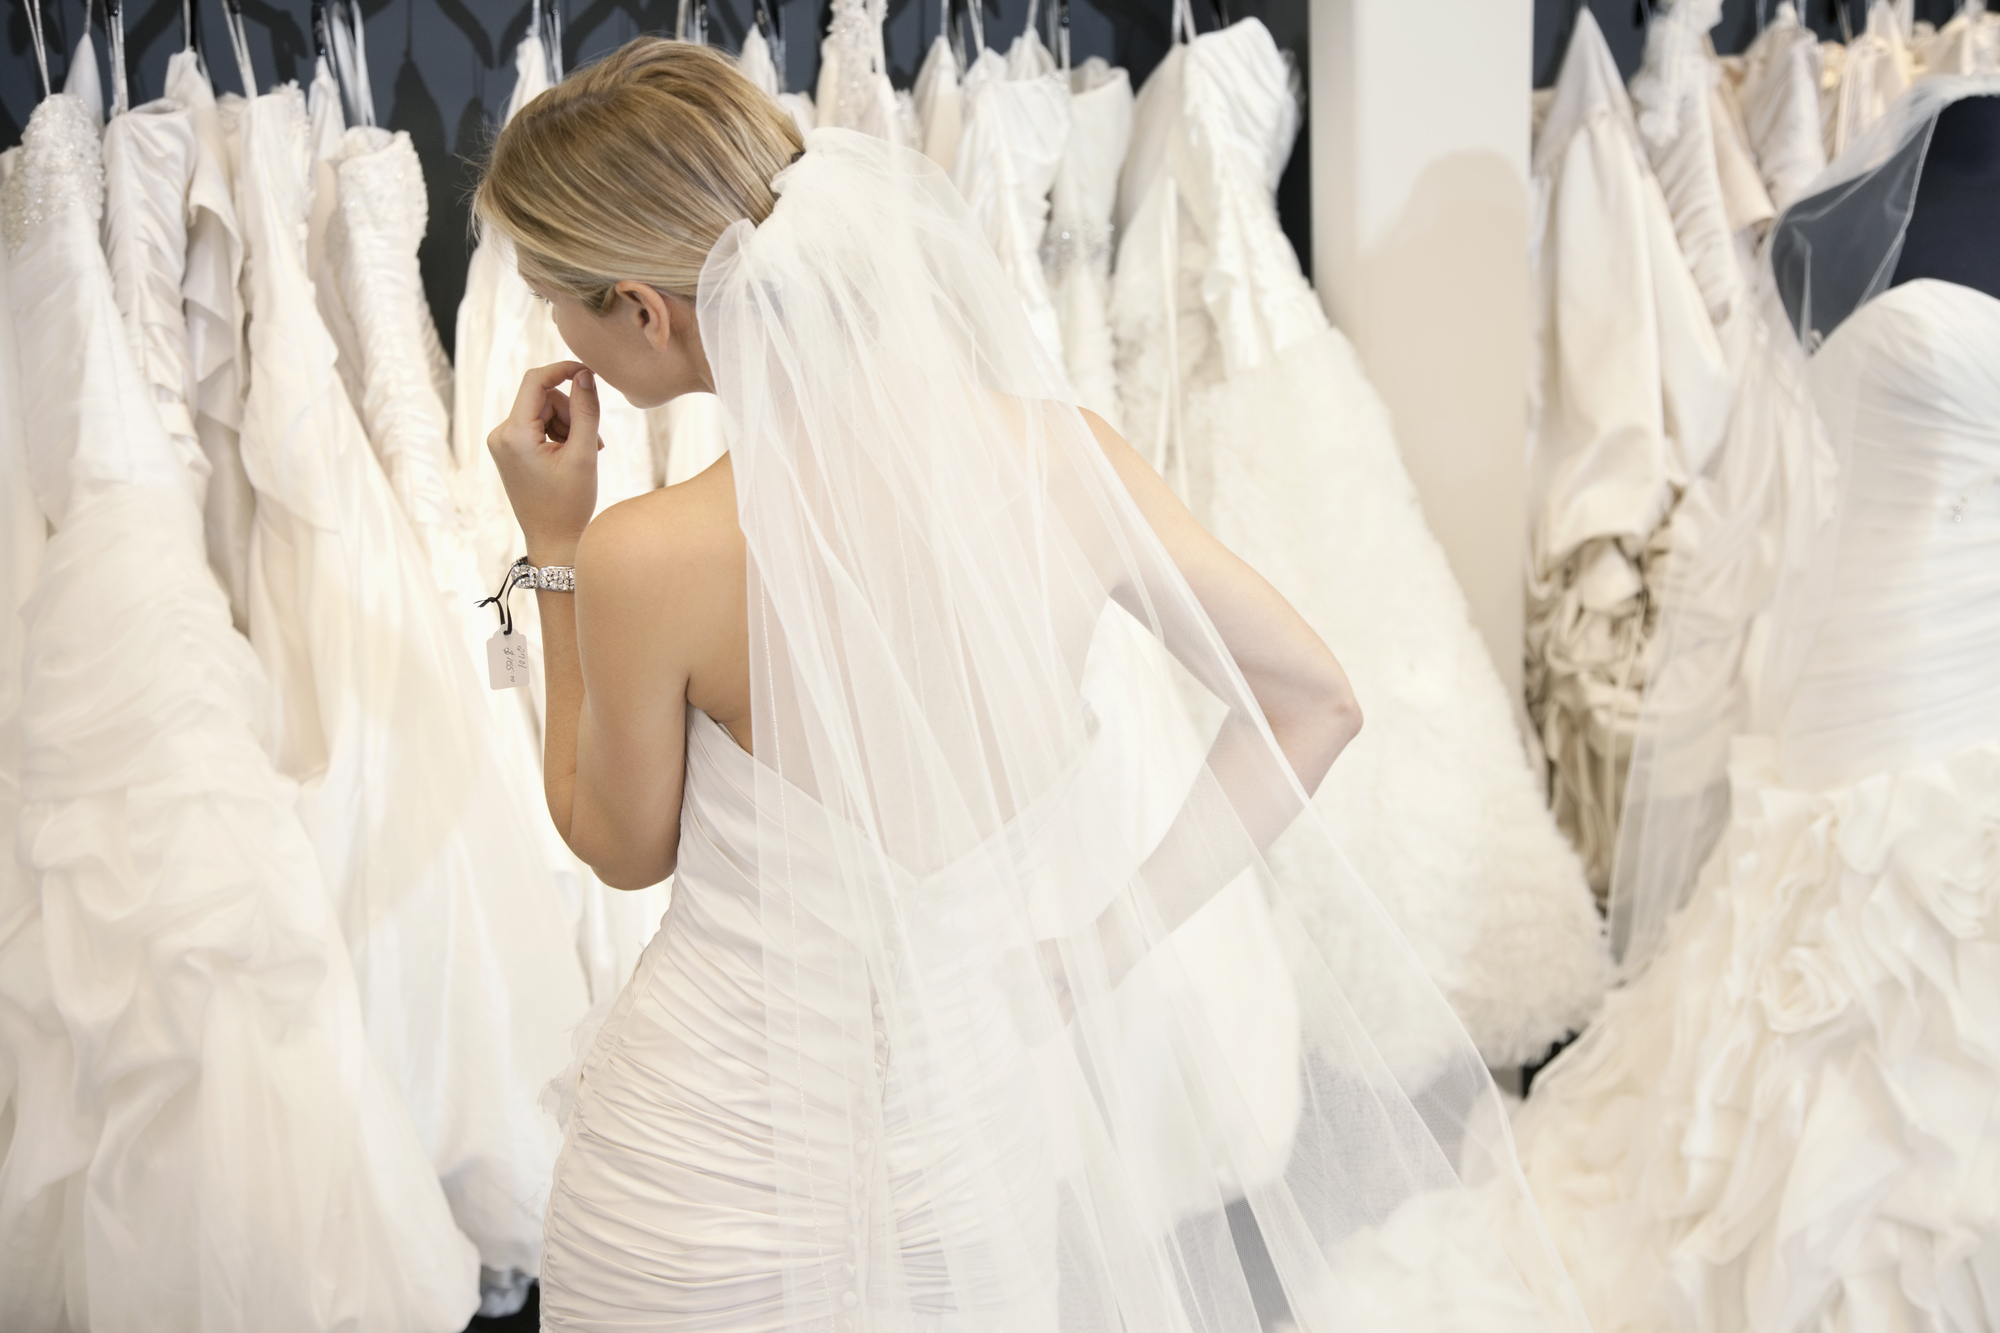 Why It's Important to Buy Your Wedding Dress 8-12 Months in Advance